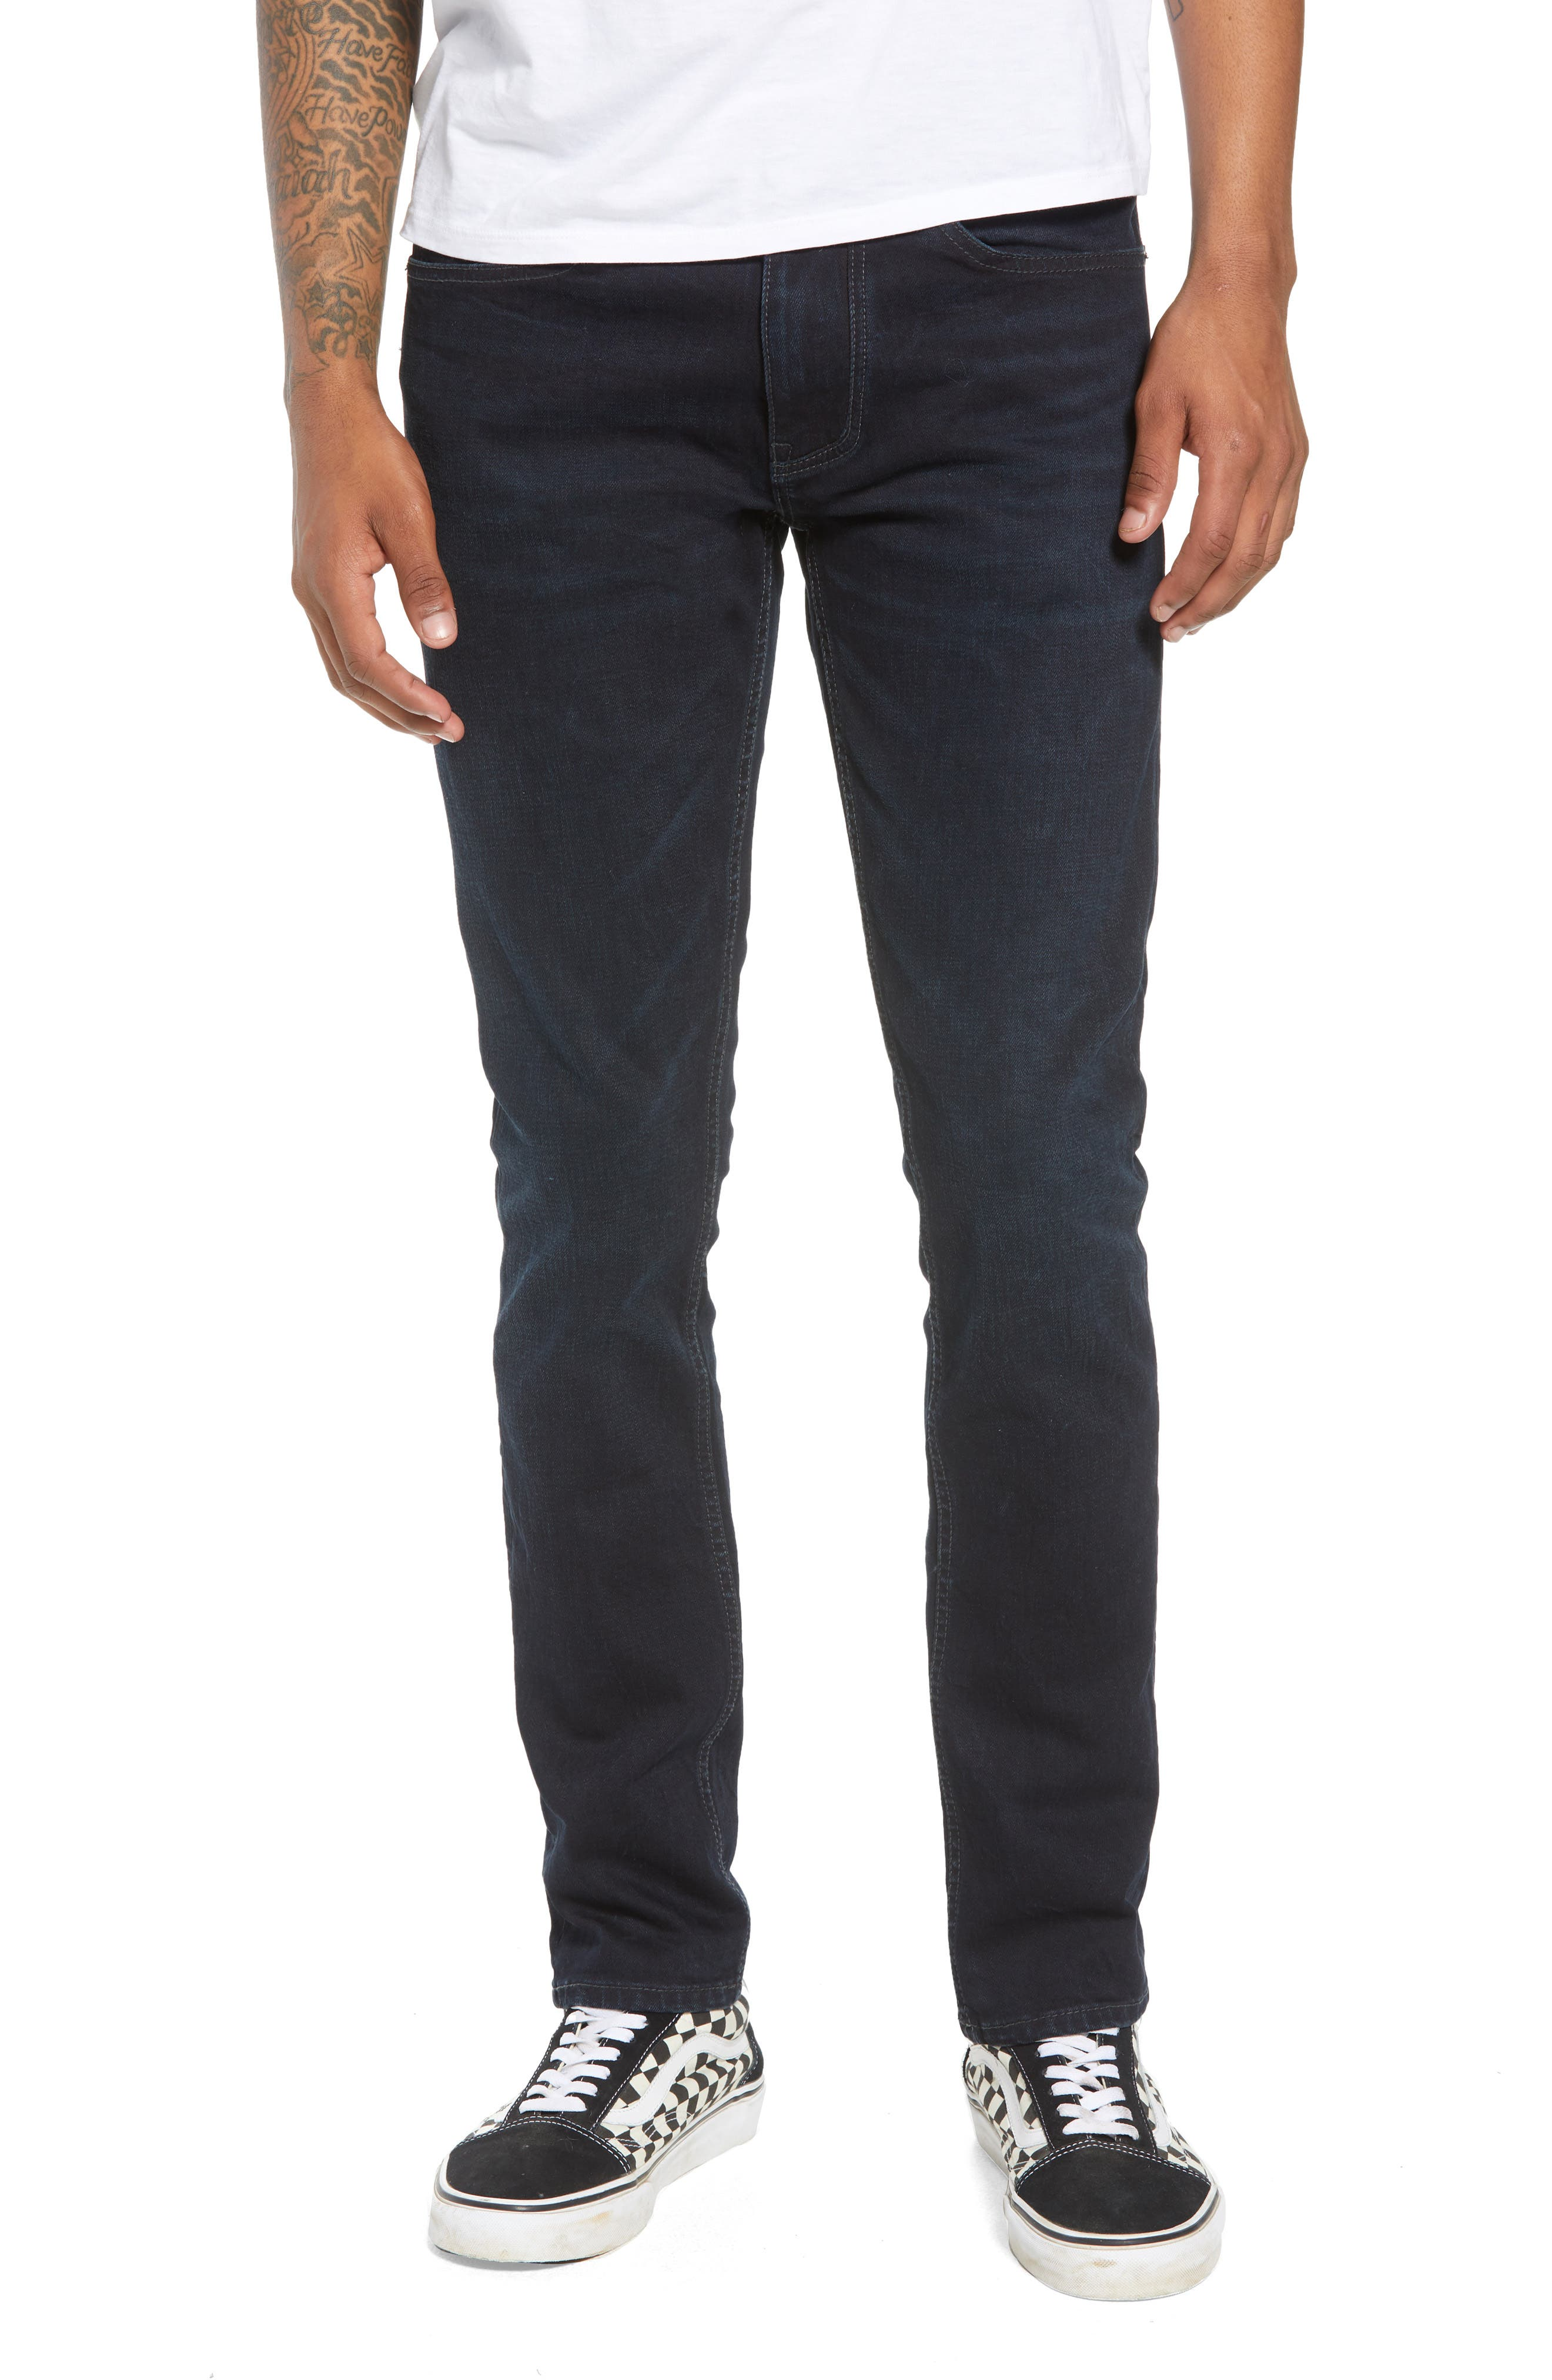 Wooster Slim Fit Jeans,                         Main,                         color, 409